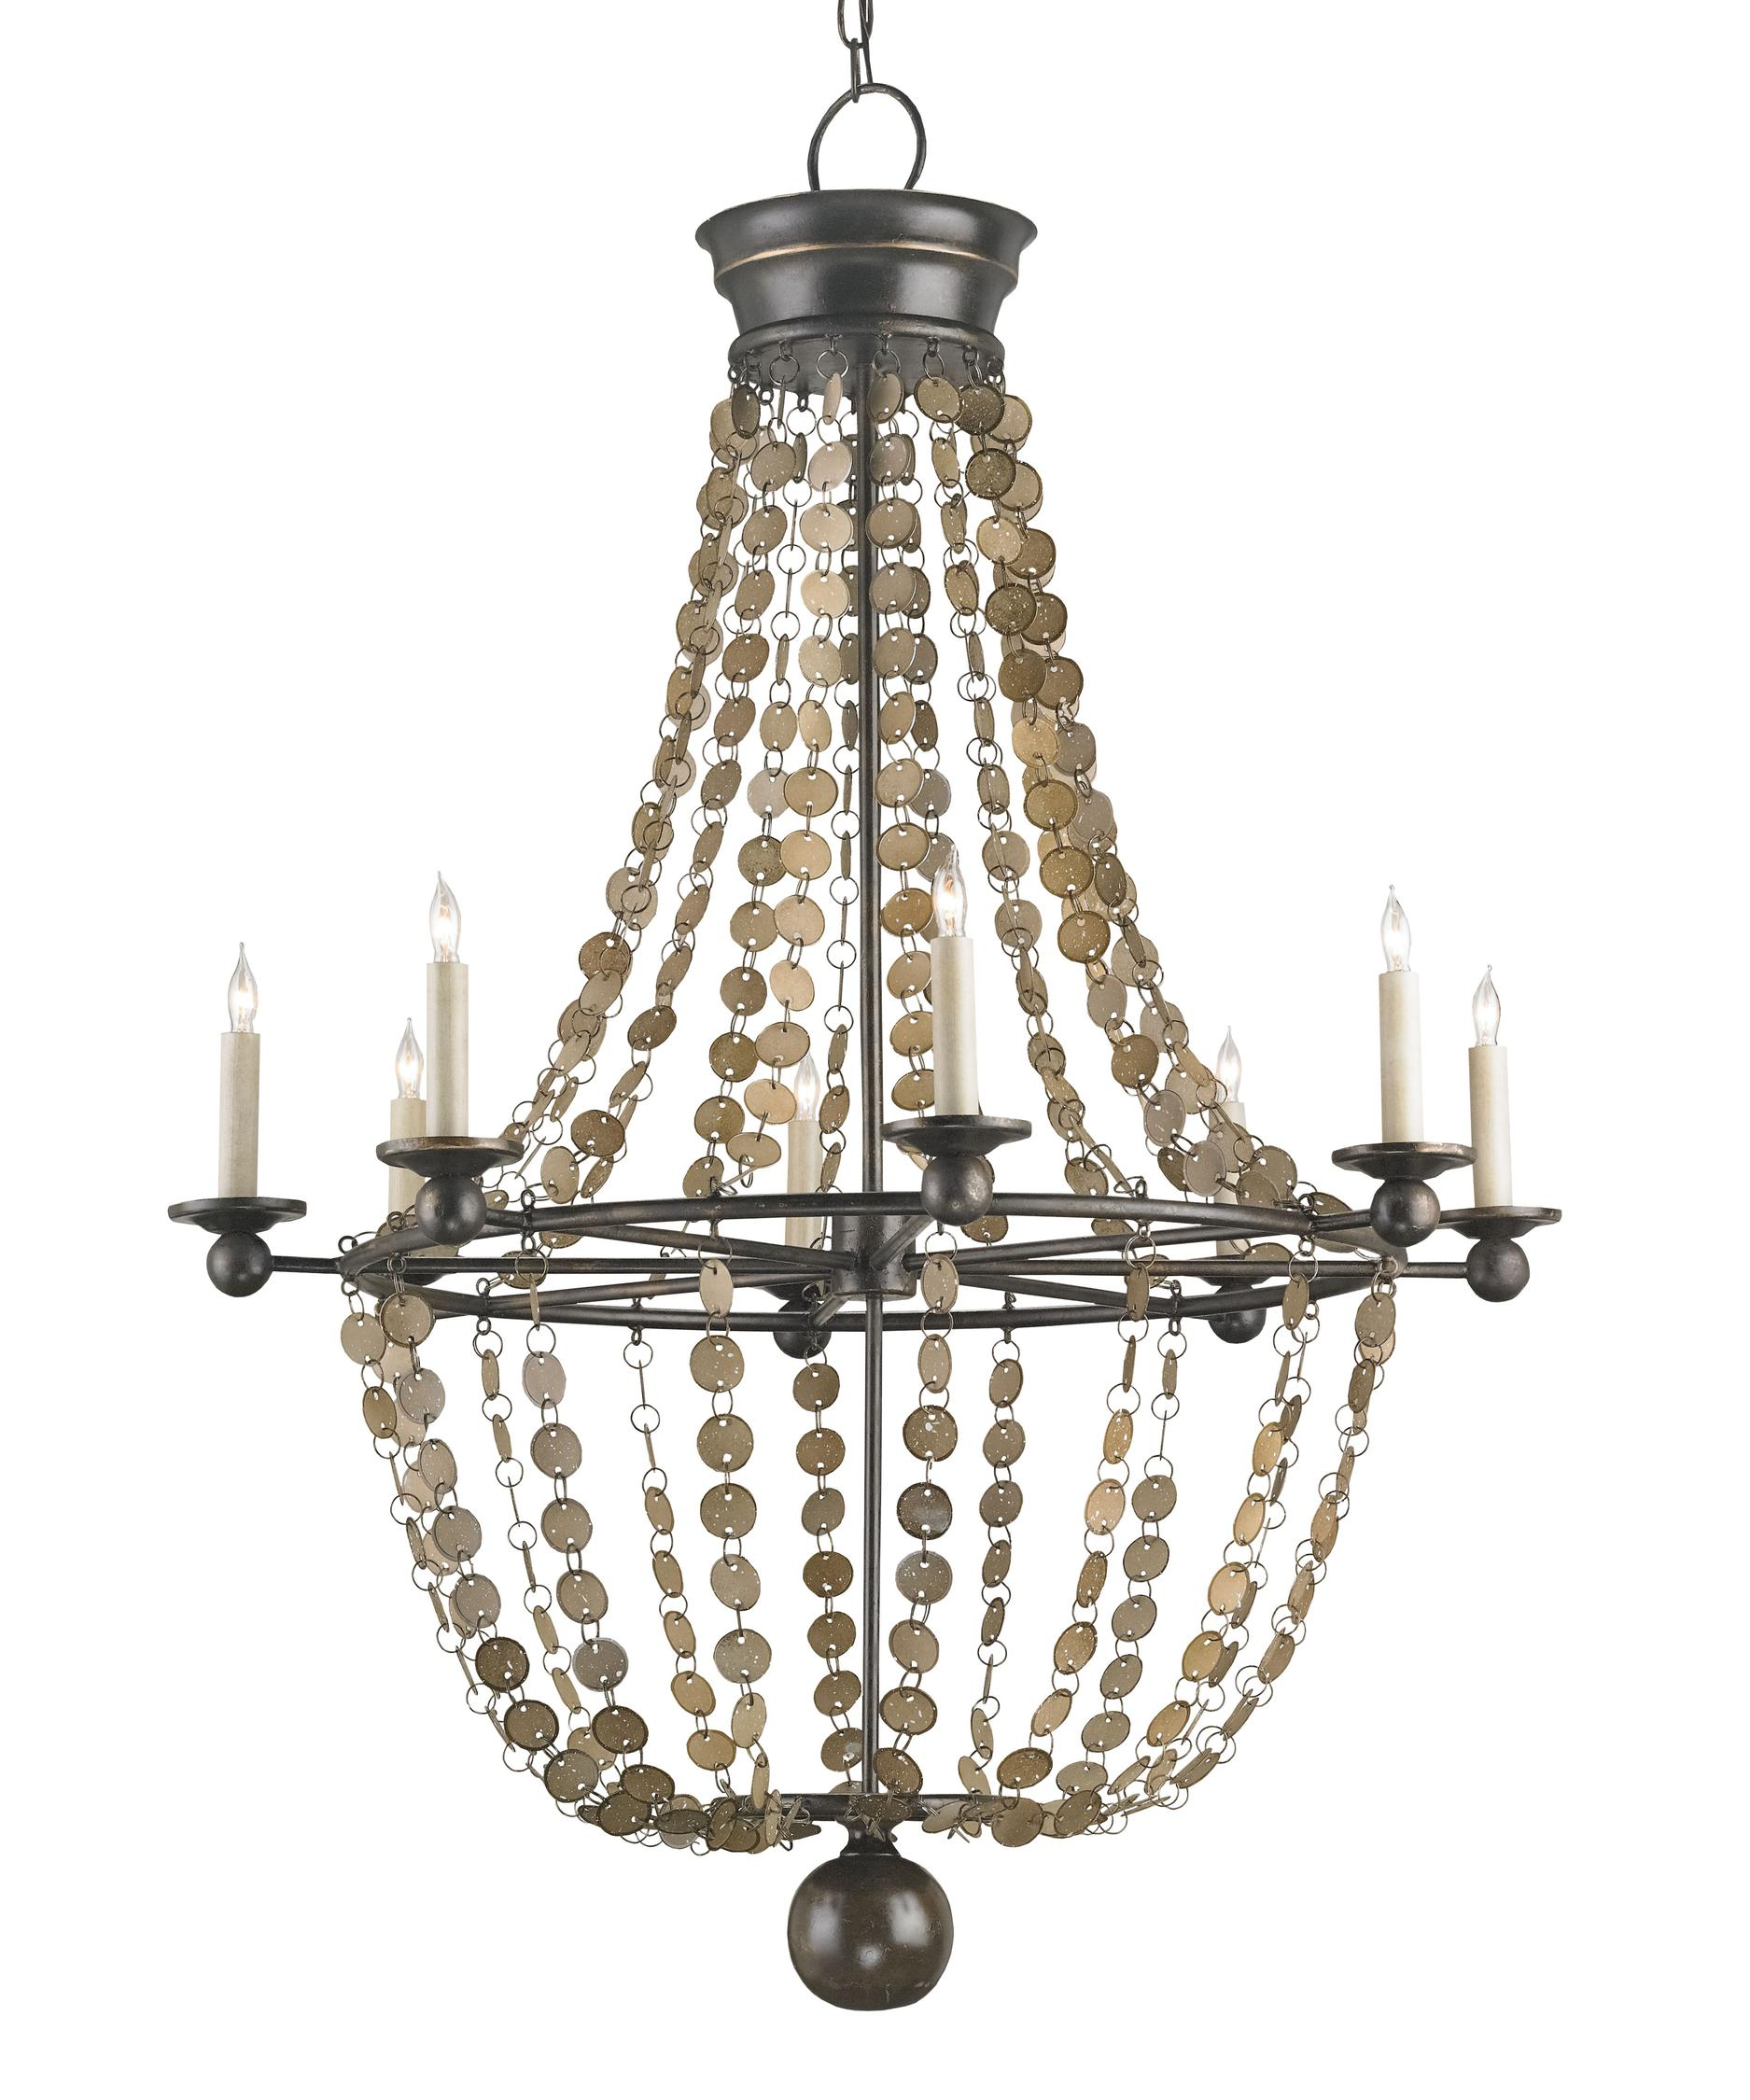 Currey and Company Creswell 32 Inch Wide 8 Light Chandelier – Currey and Company Lighting Chandeliers